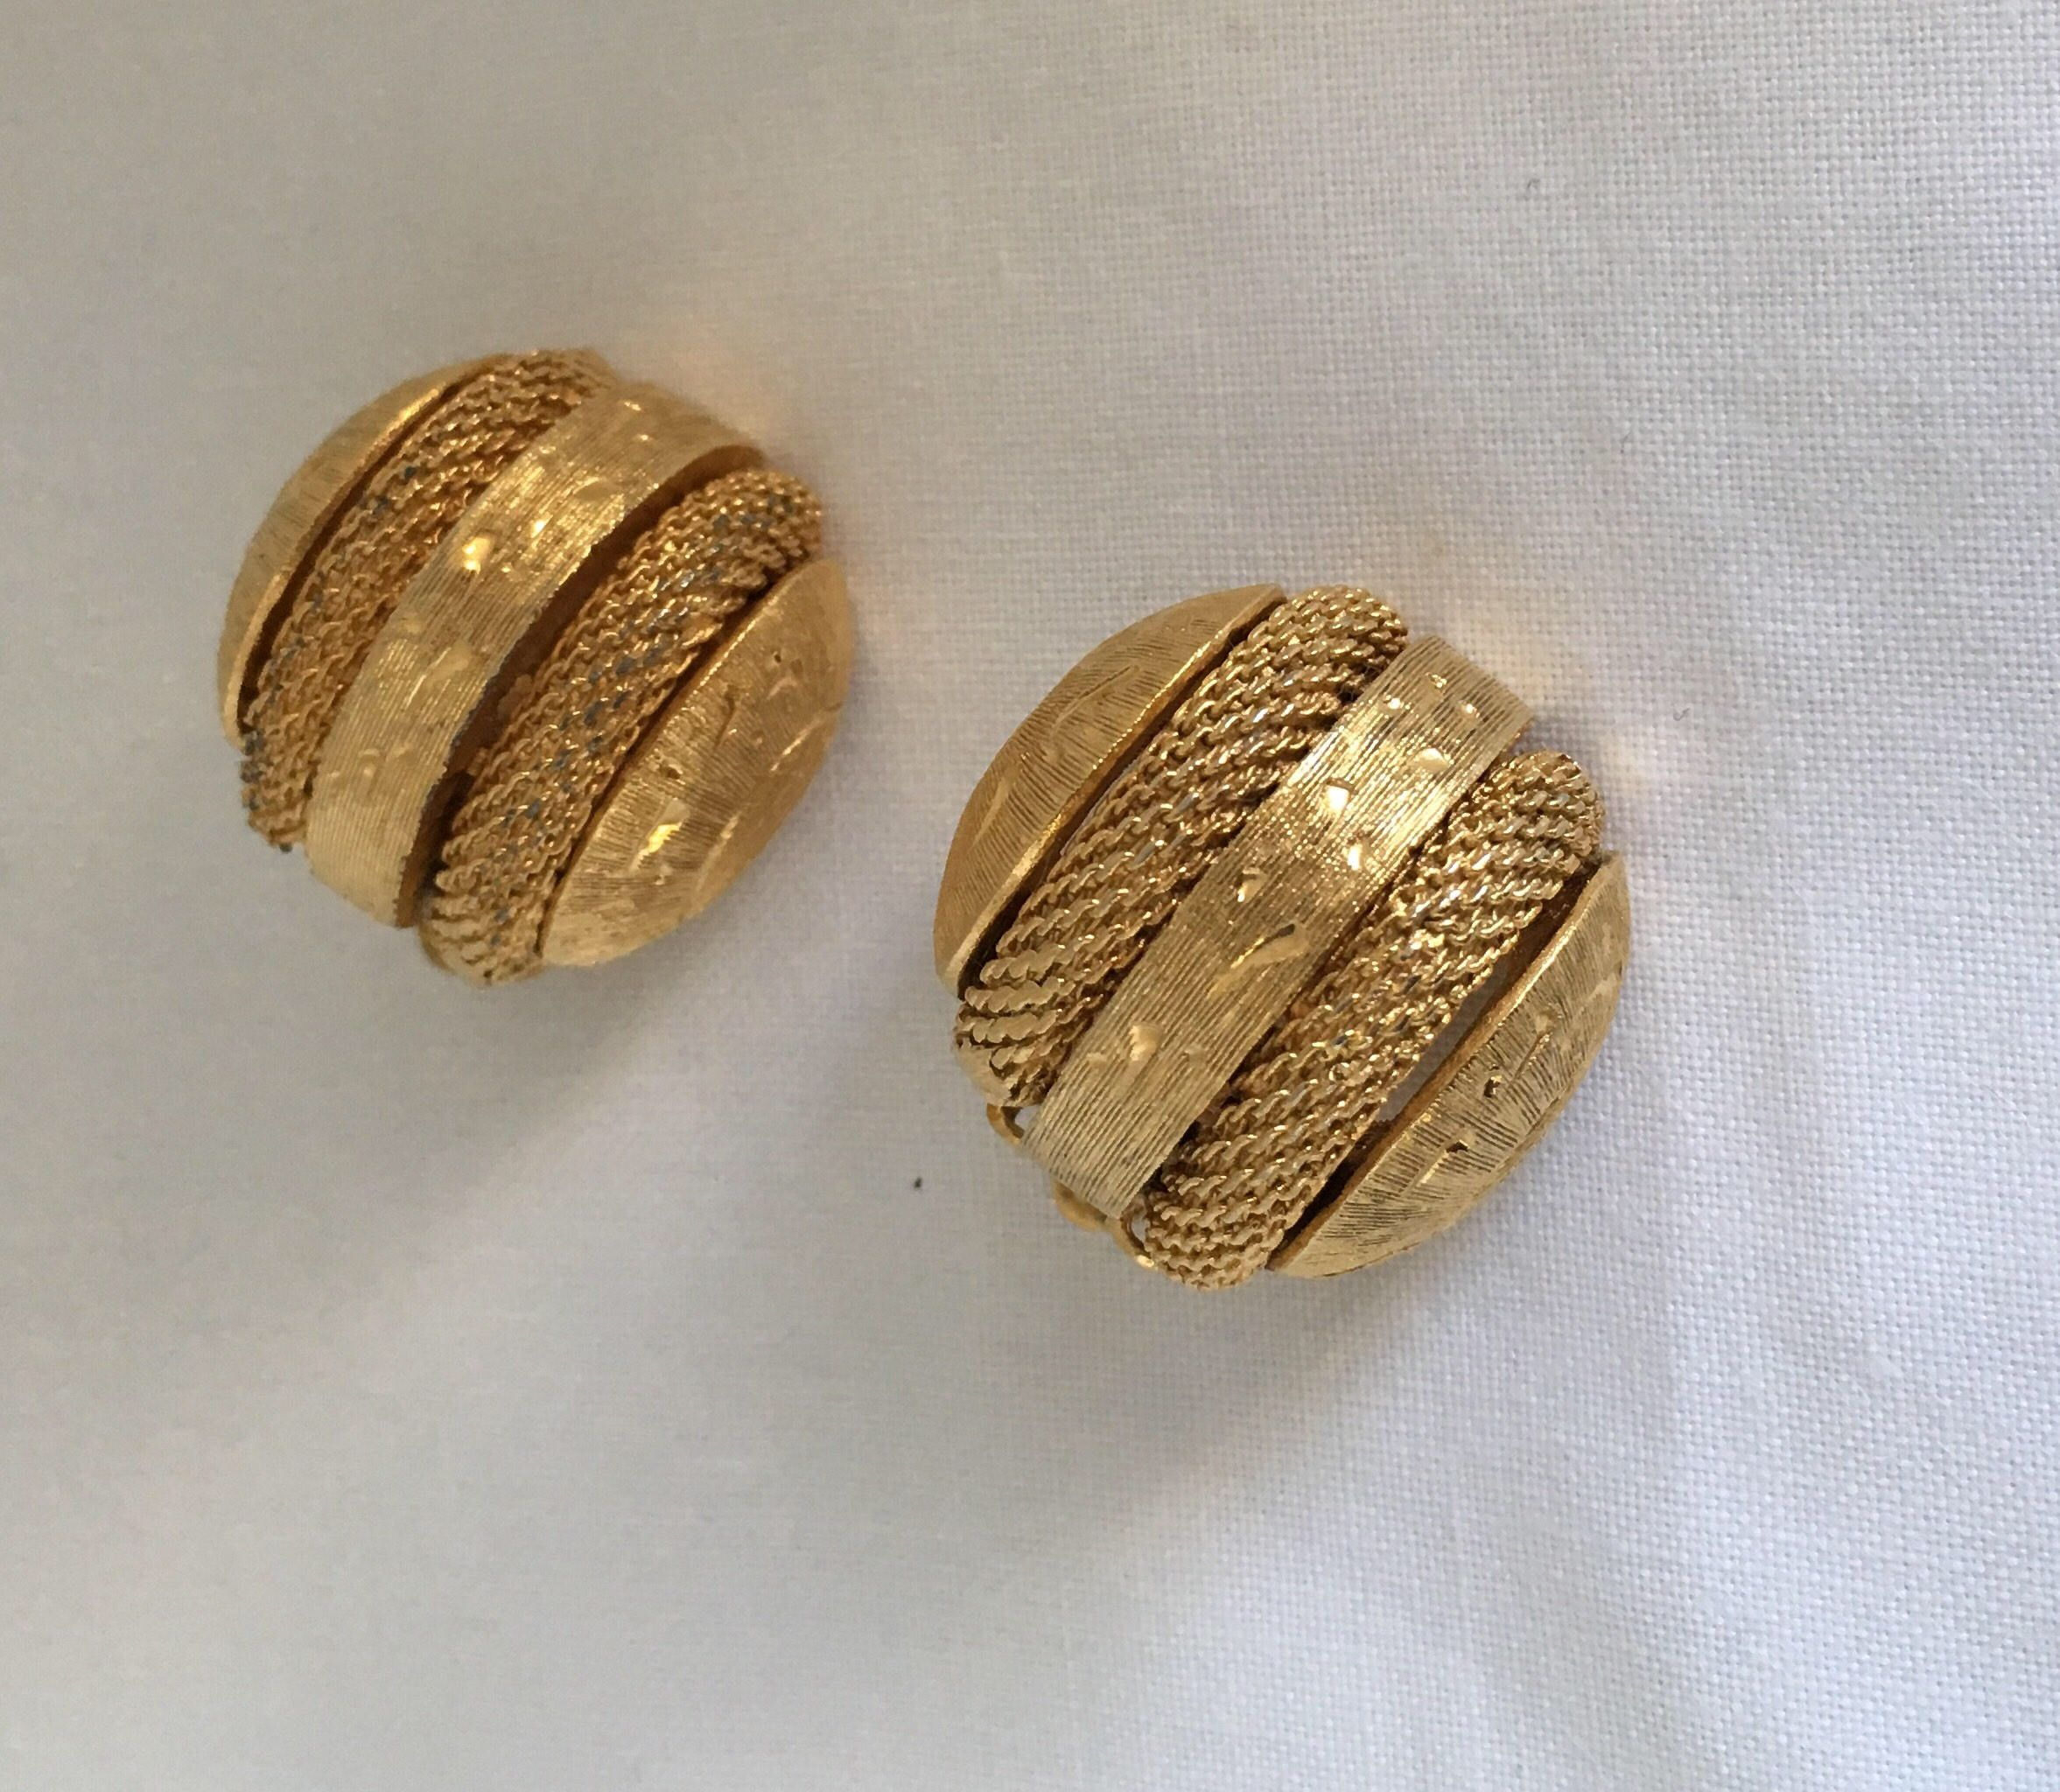 2399c4ee6 Excited to share the latest addition to my #etsy shop: Designer Kramer of  New York Beautiful Clip On Round Dome Yellow Gold Tone Vintage Earrings  Hallmark